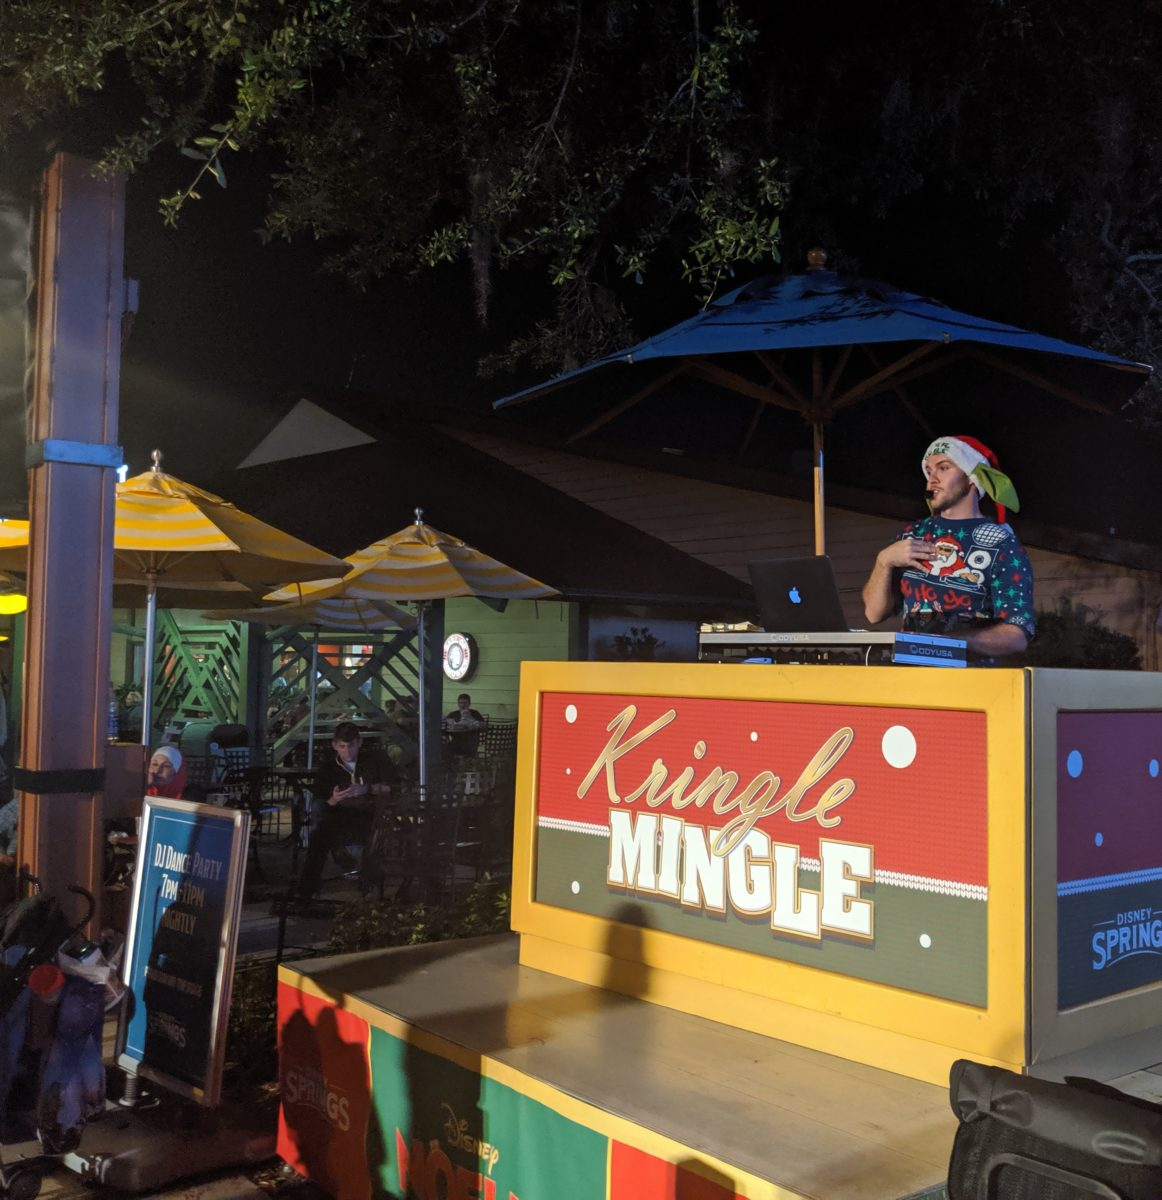 Kringle Mingle at Disney Springs in Orlando, Florida is a DJ Dance Party